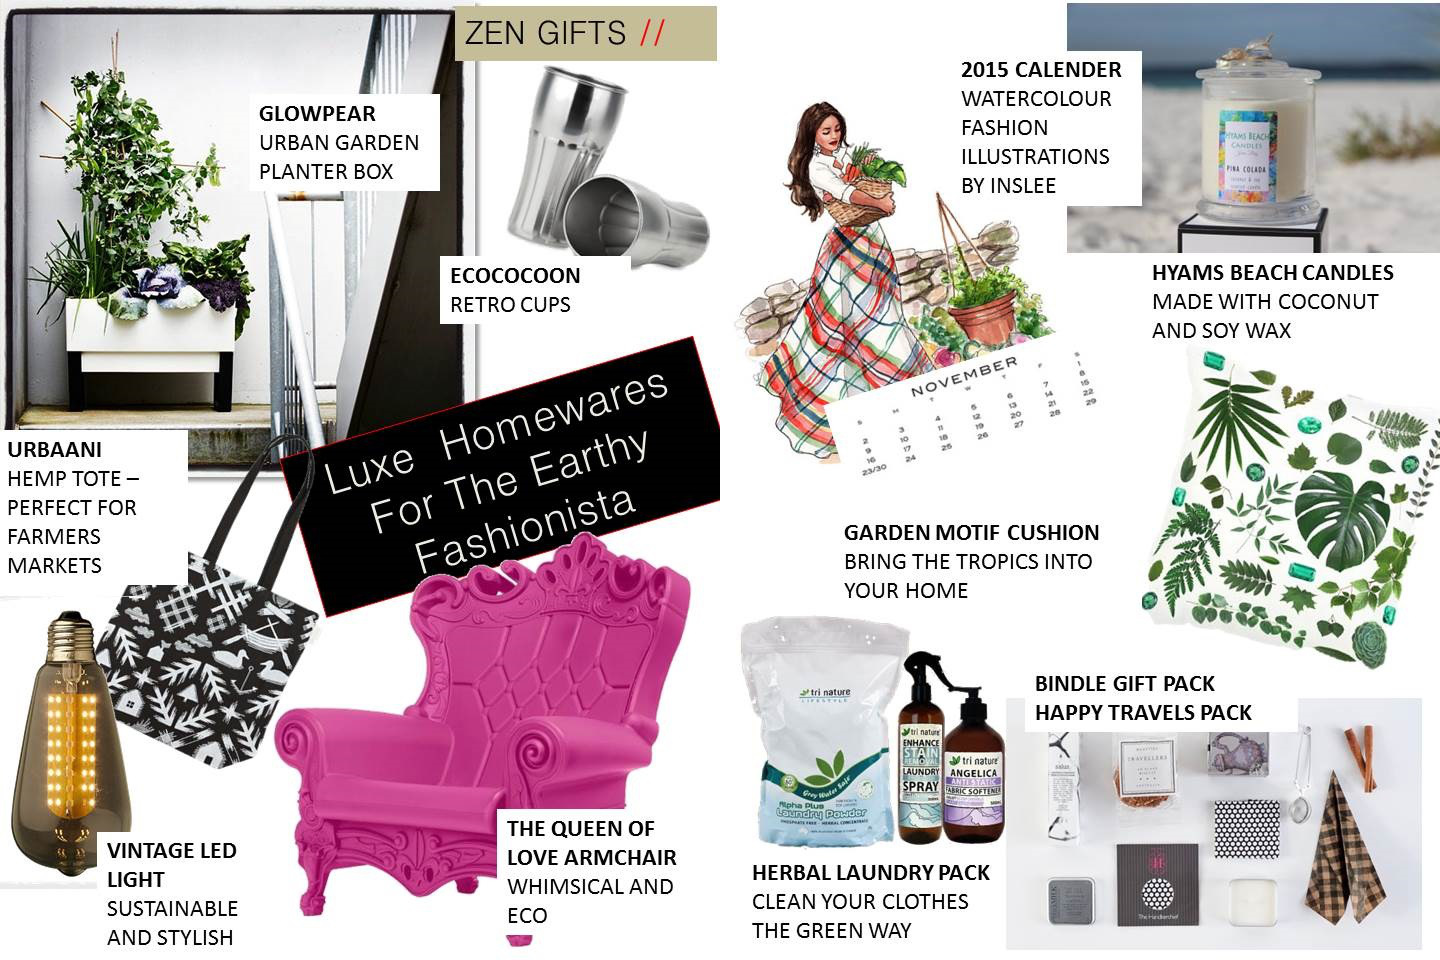 Gift Guide: Luxe Homewares For The Earthy Fashionista